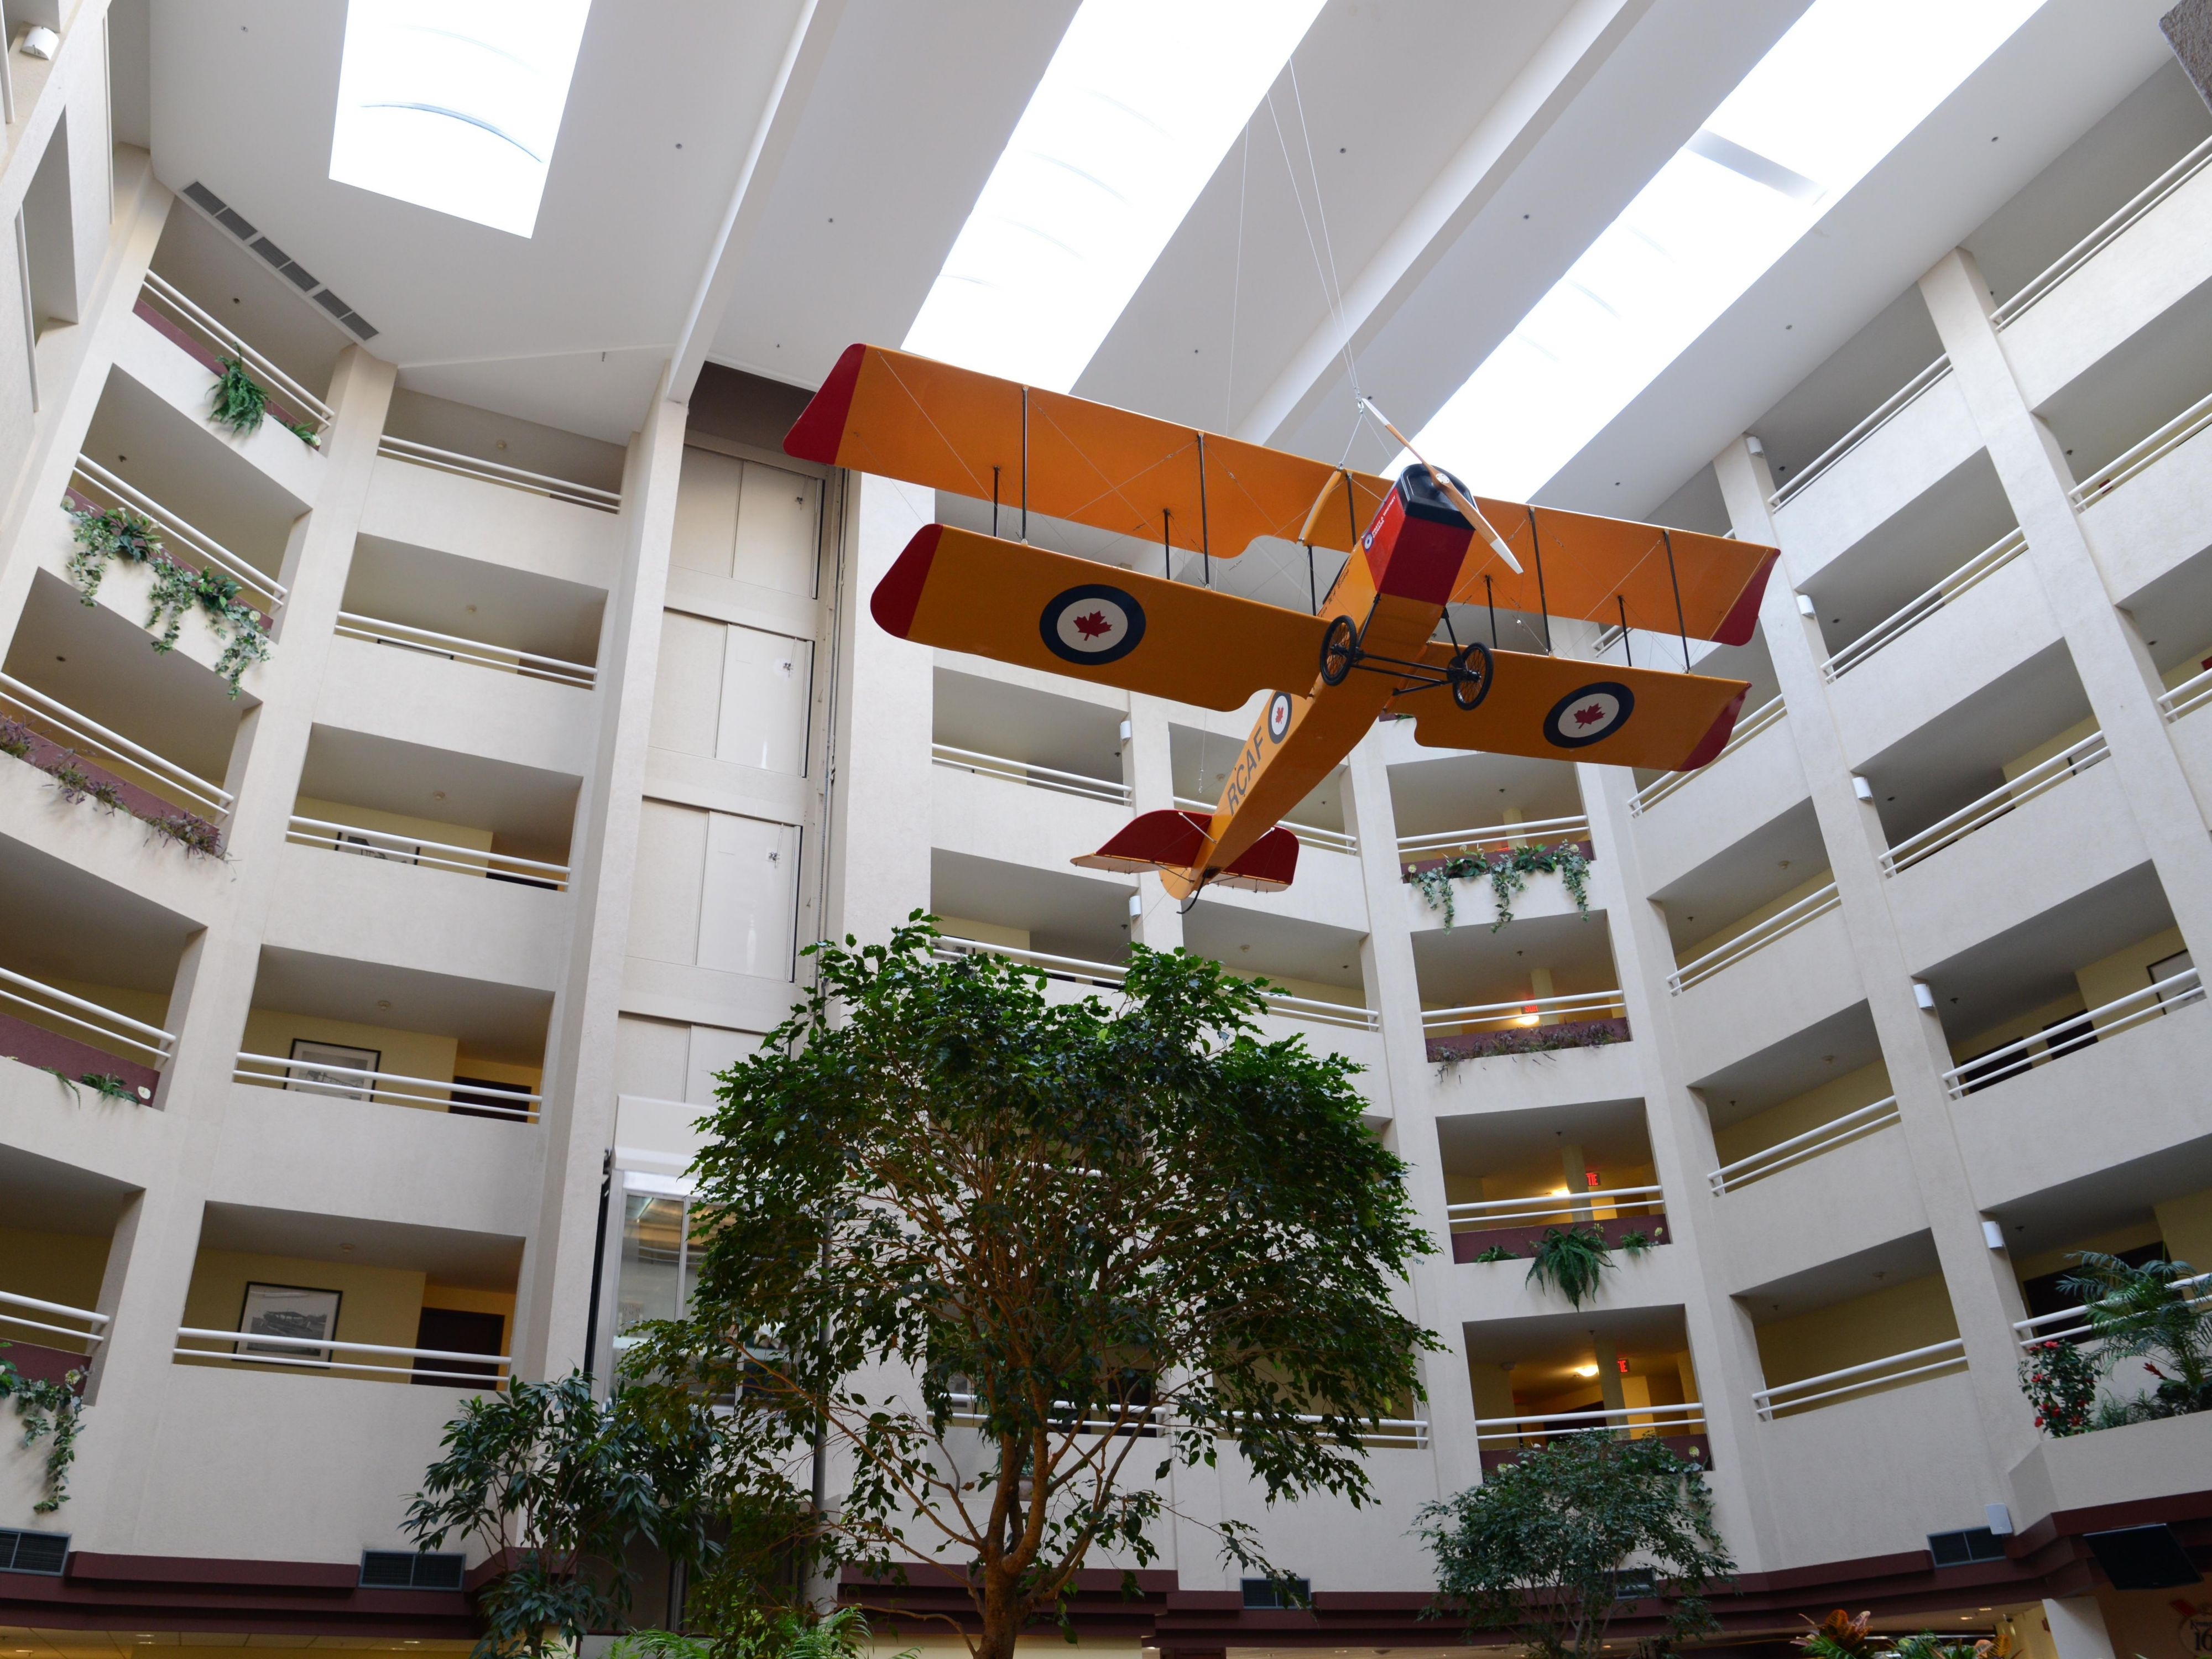 Come and see our spacious Atrium and imagine flying the WWII plane